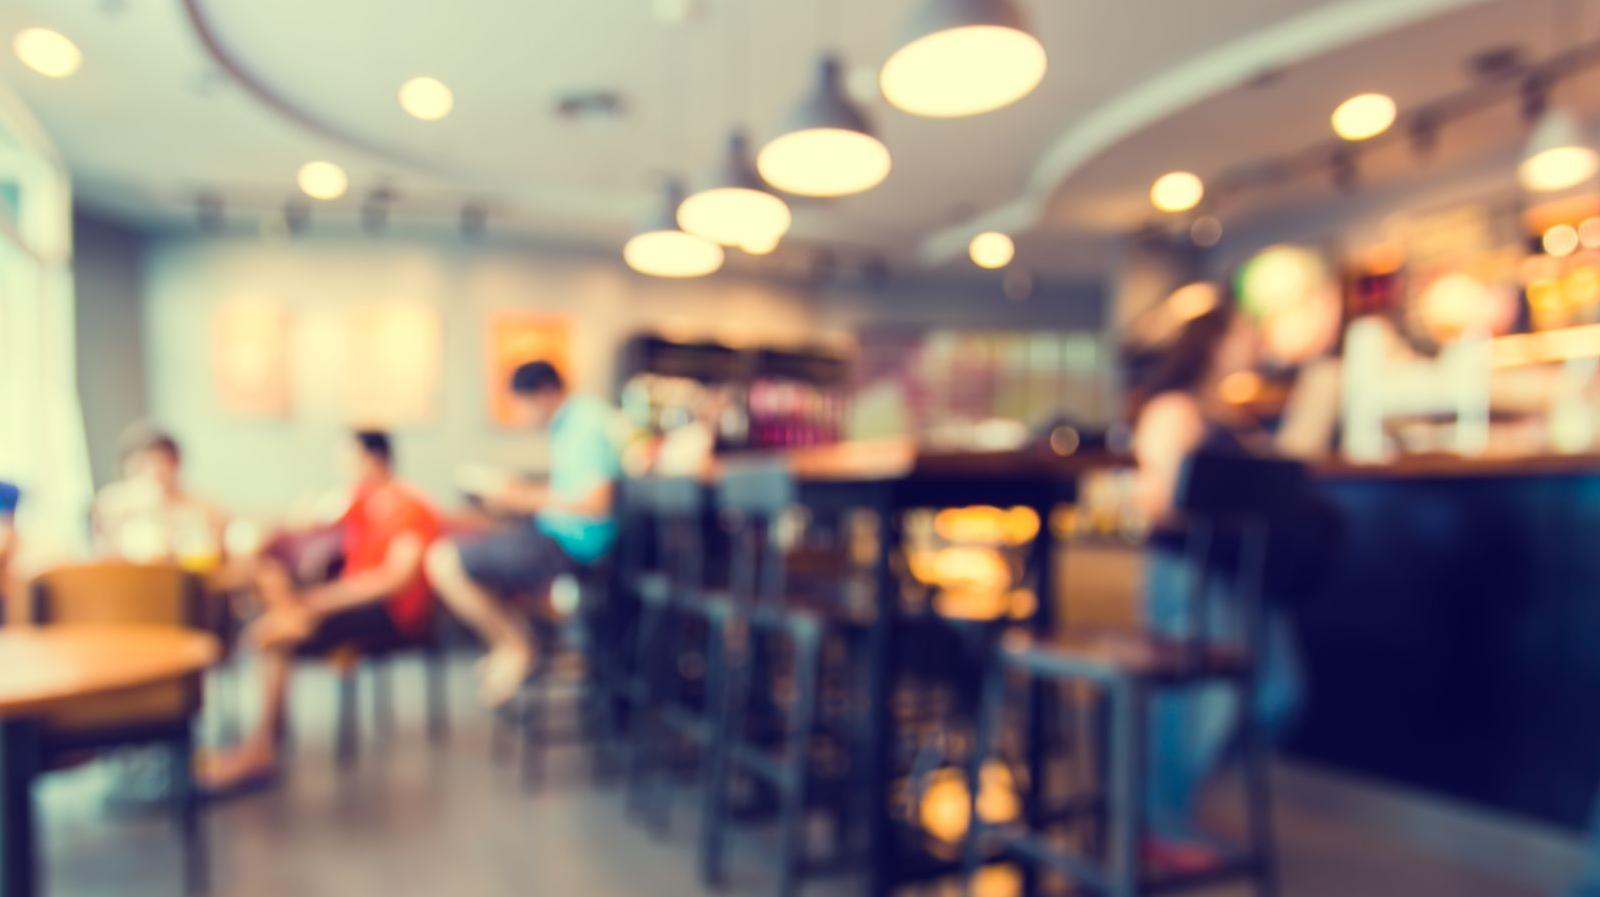 Seabreeze Farms - stock photo of people seated in a café